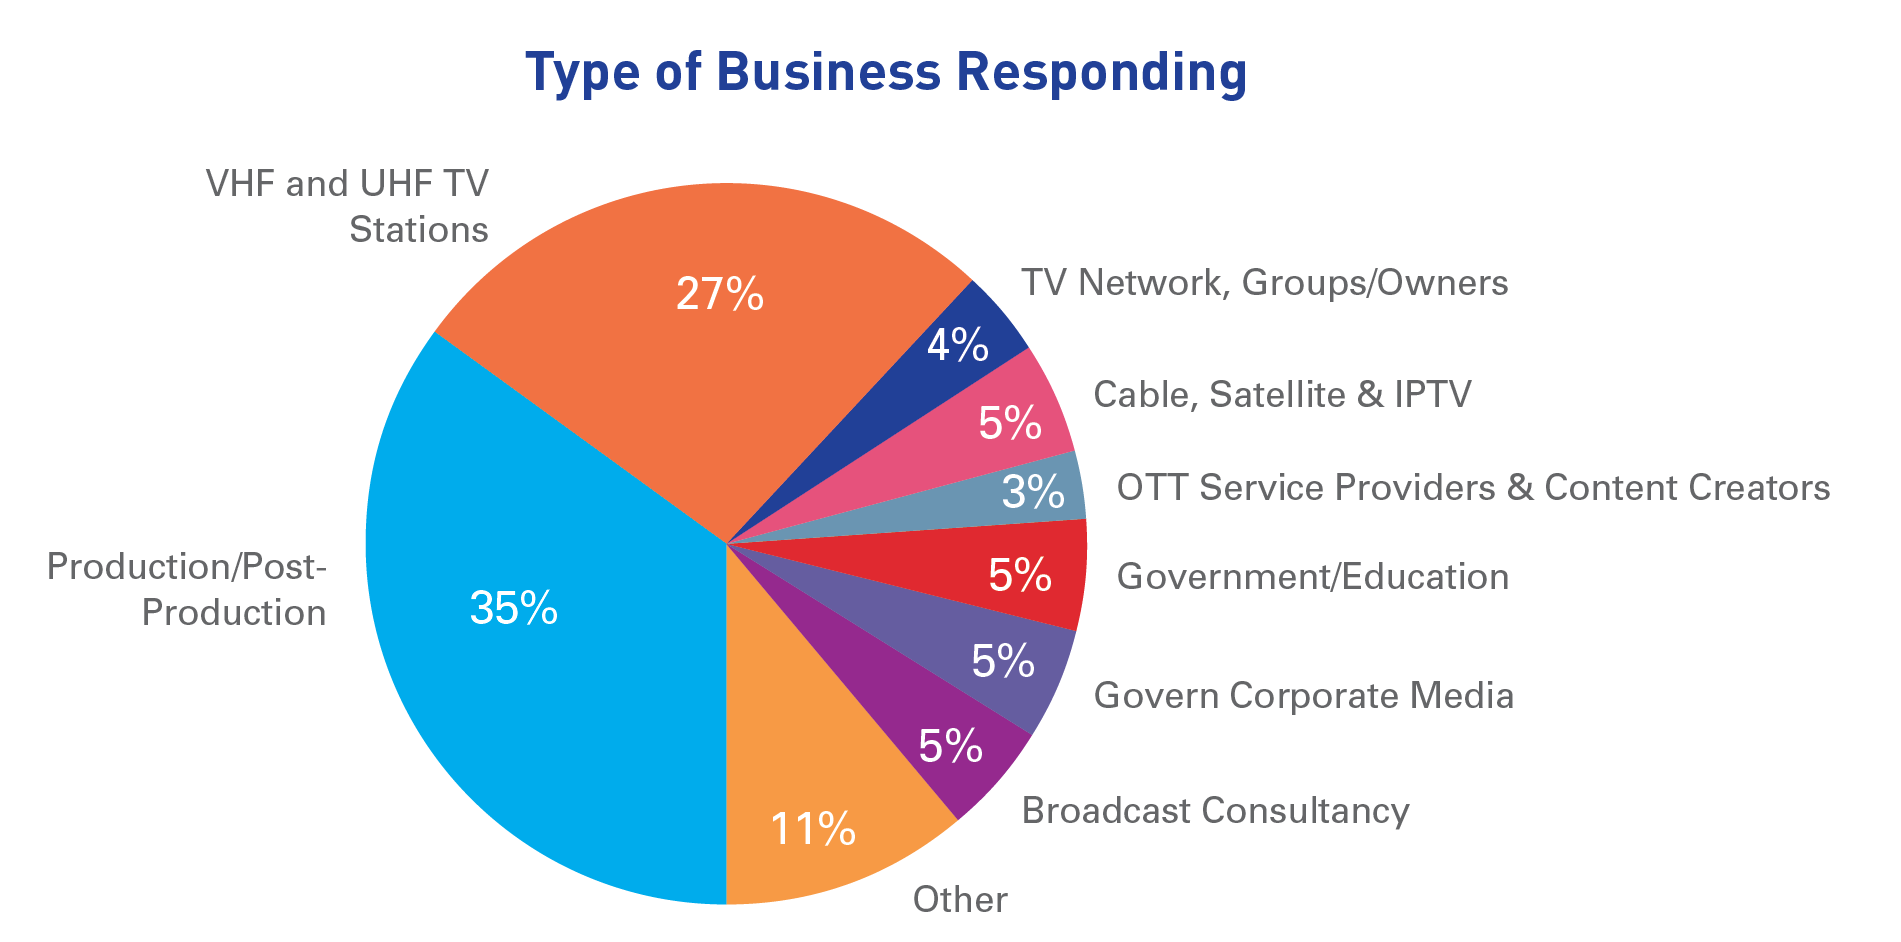 Types of businesses responding to survey